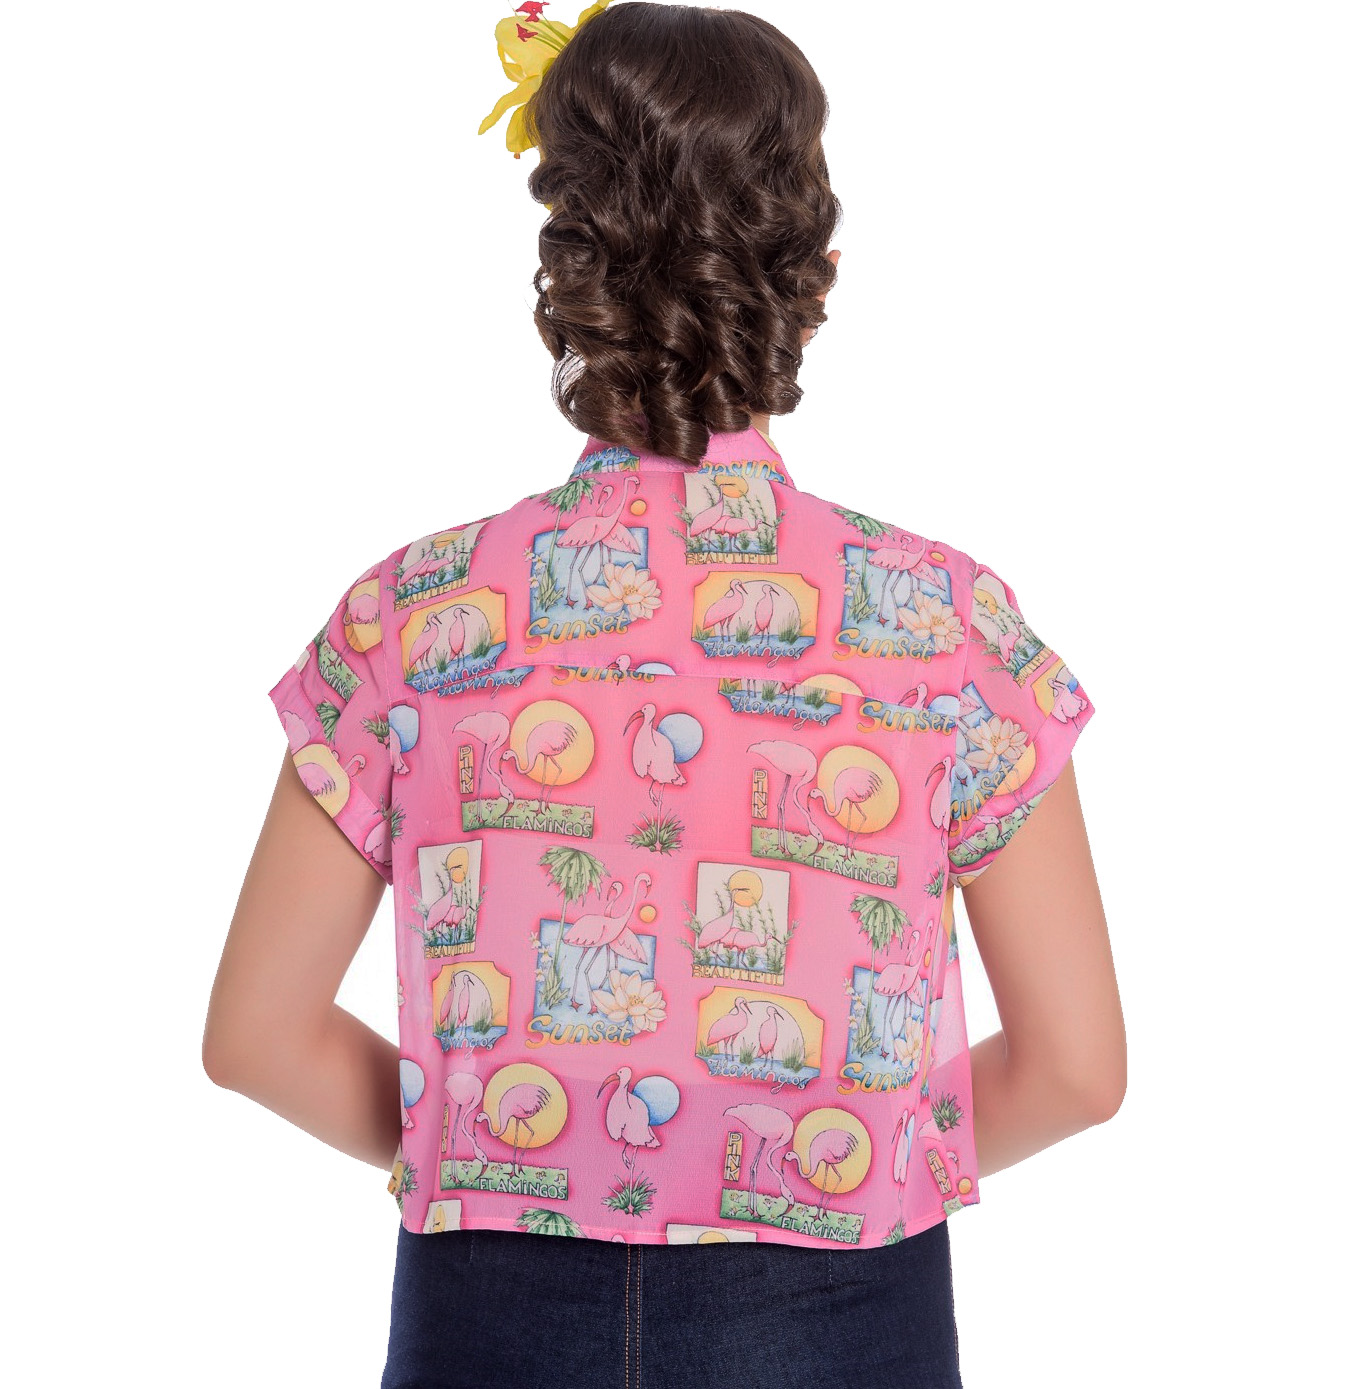 thumbnail 8 - Hell Bunny 50s Retro Top Pink Flamingo MAXINE Cropped Blouse Shirt All Sizes